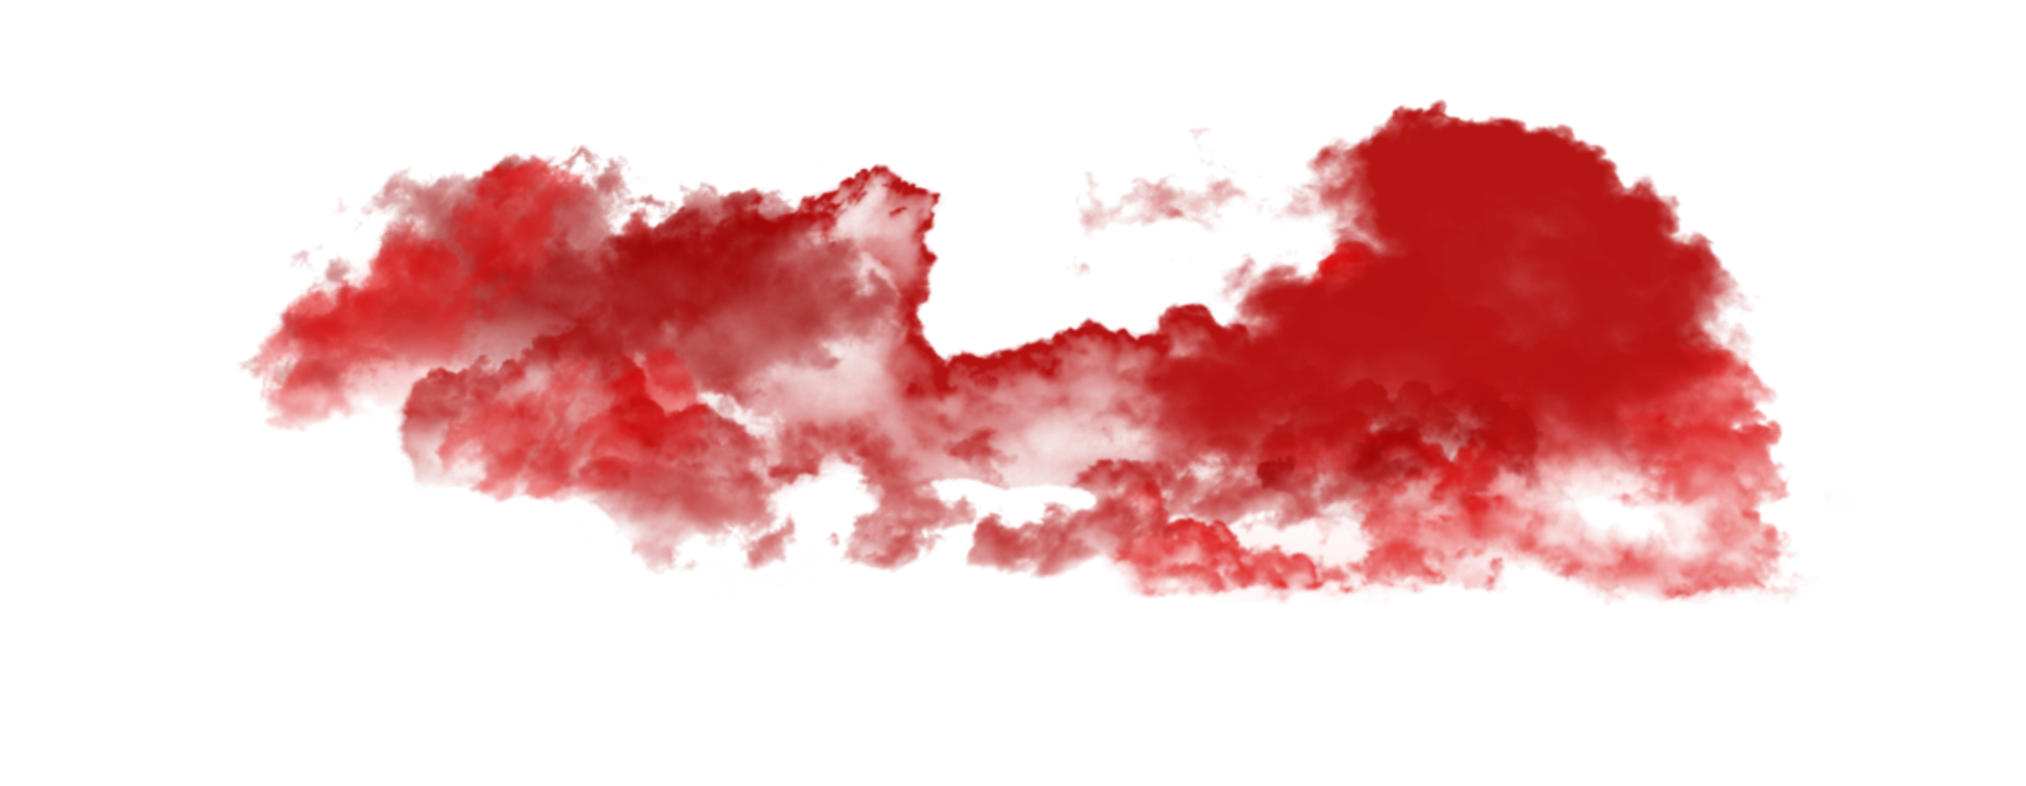 Red smoke png. Image mart